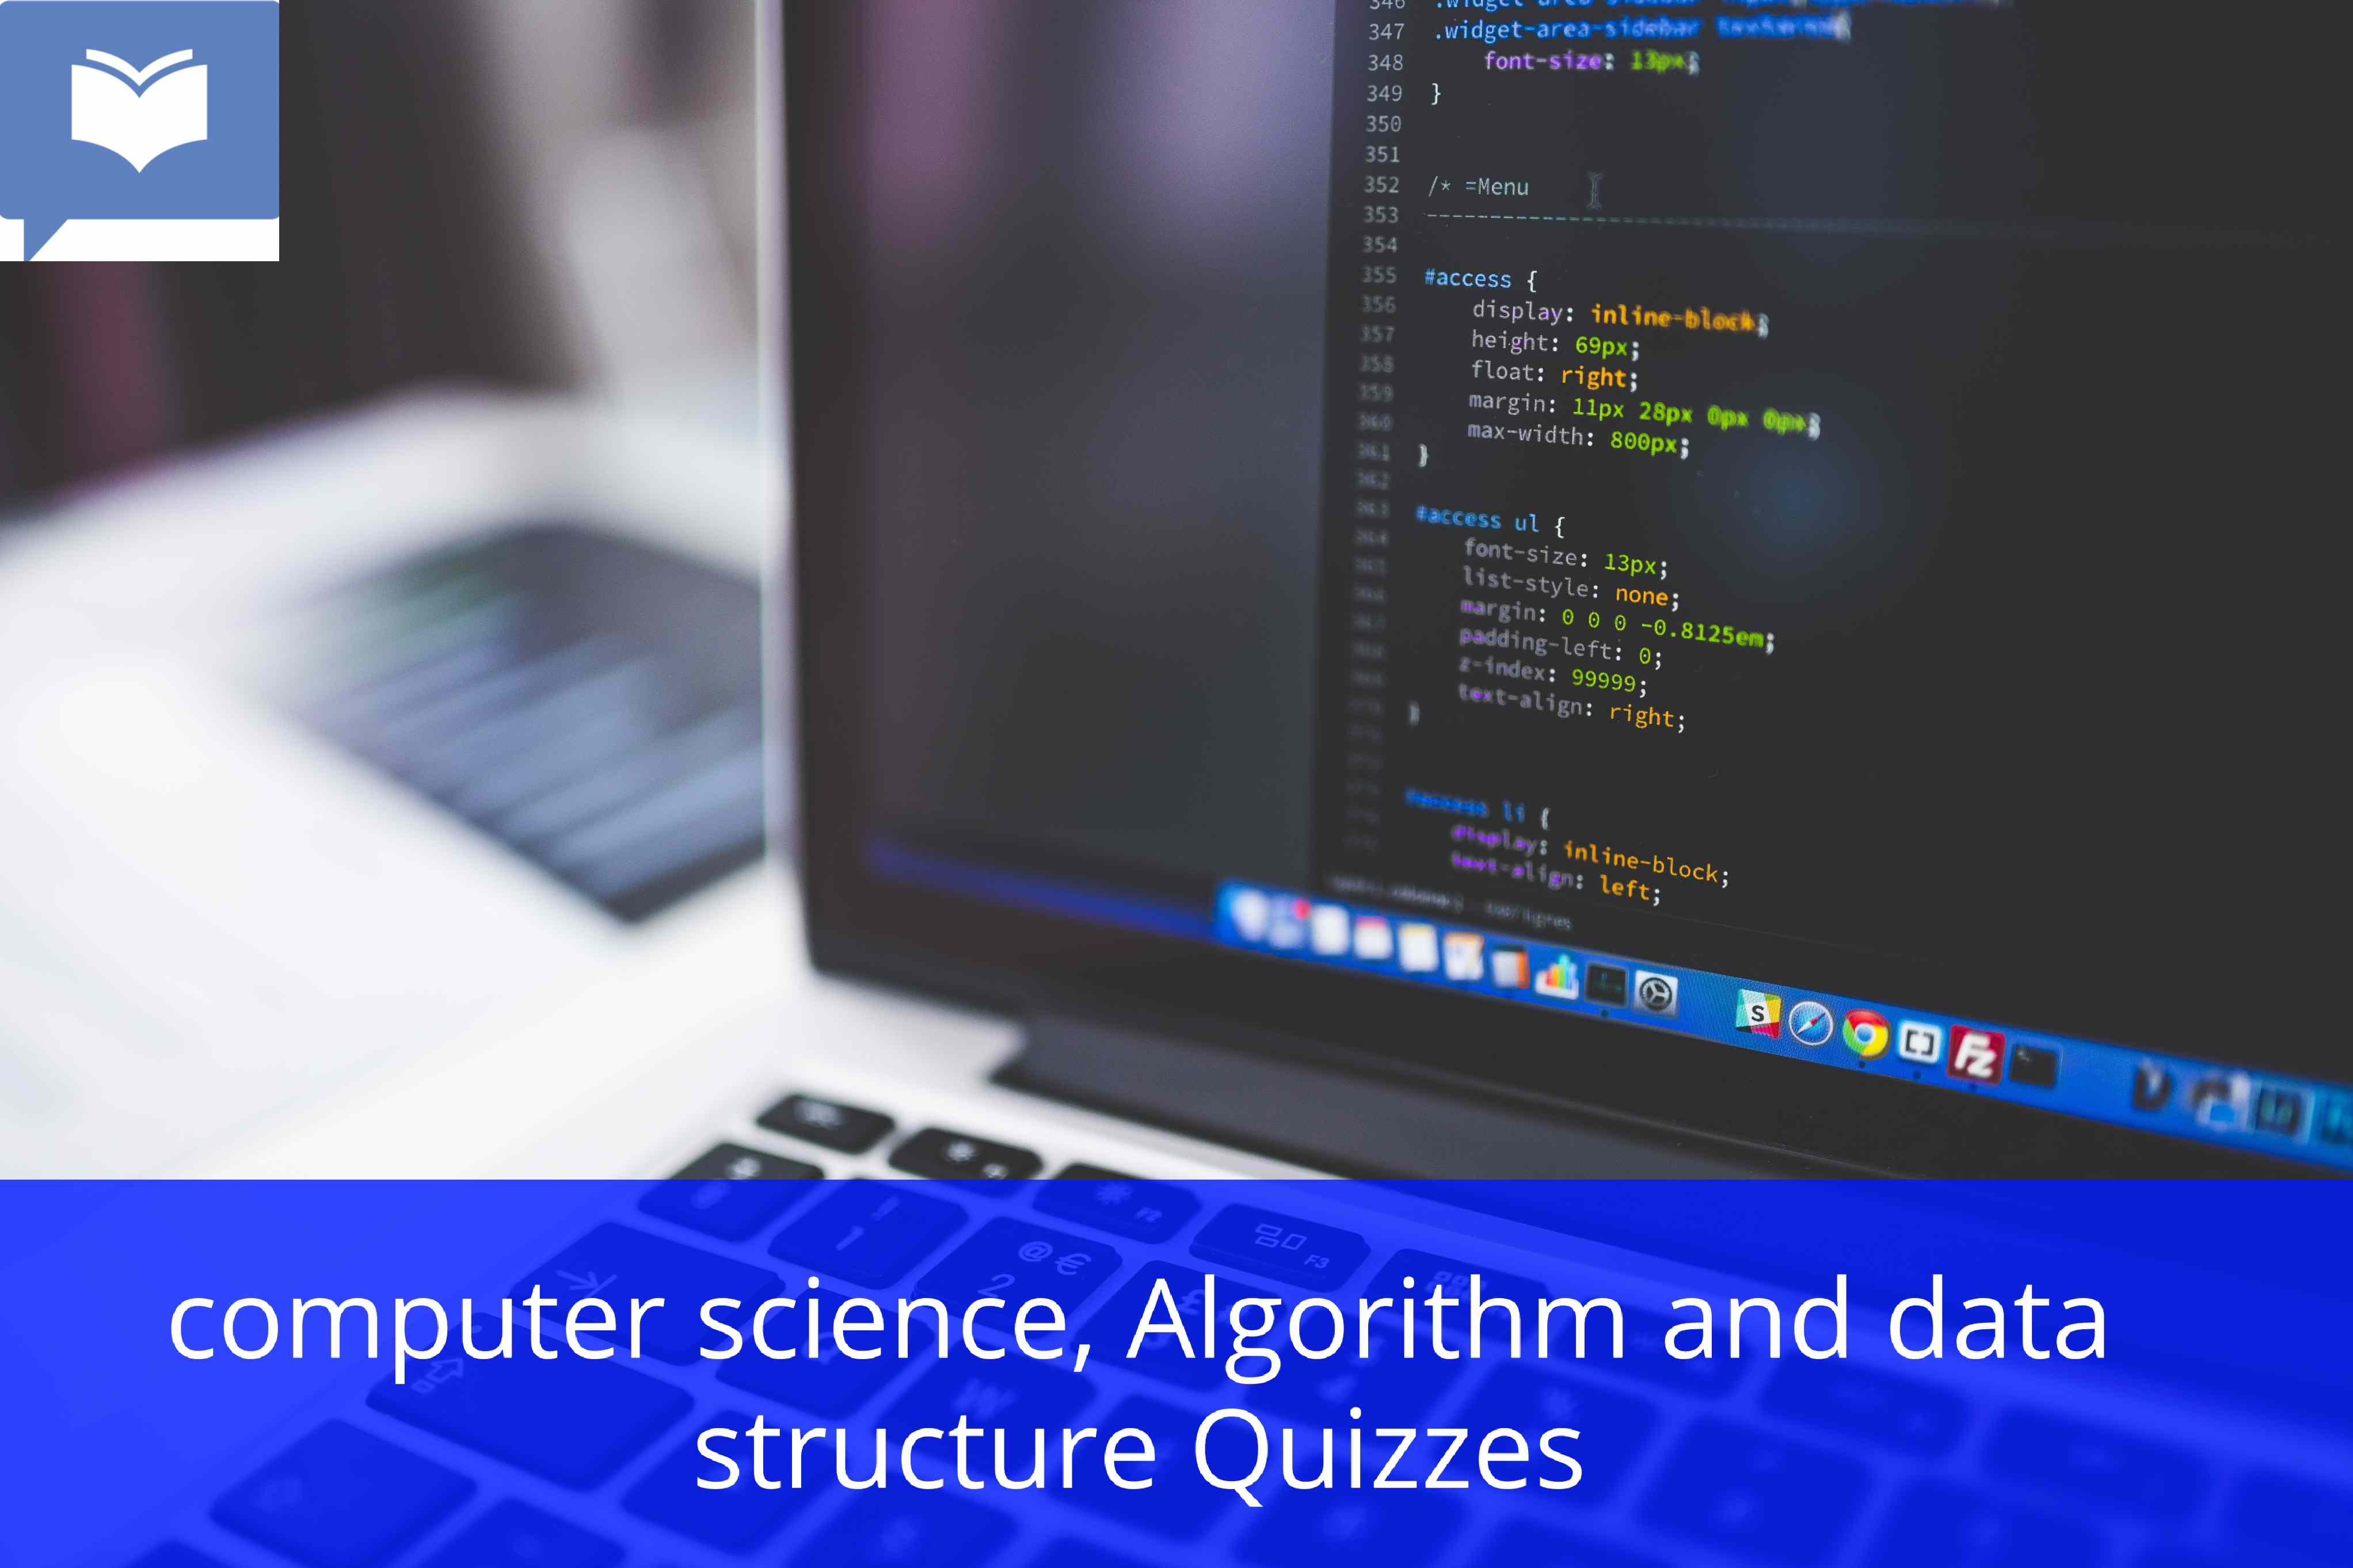 computer science, Algorithm and data structure Quizzes